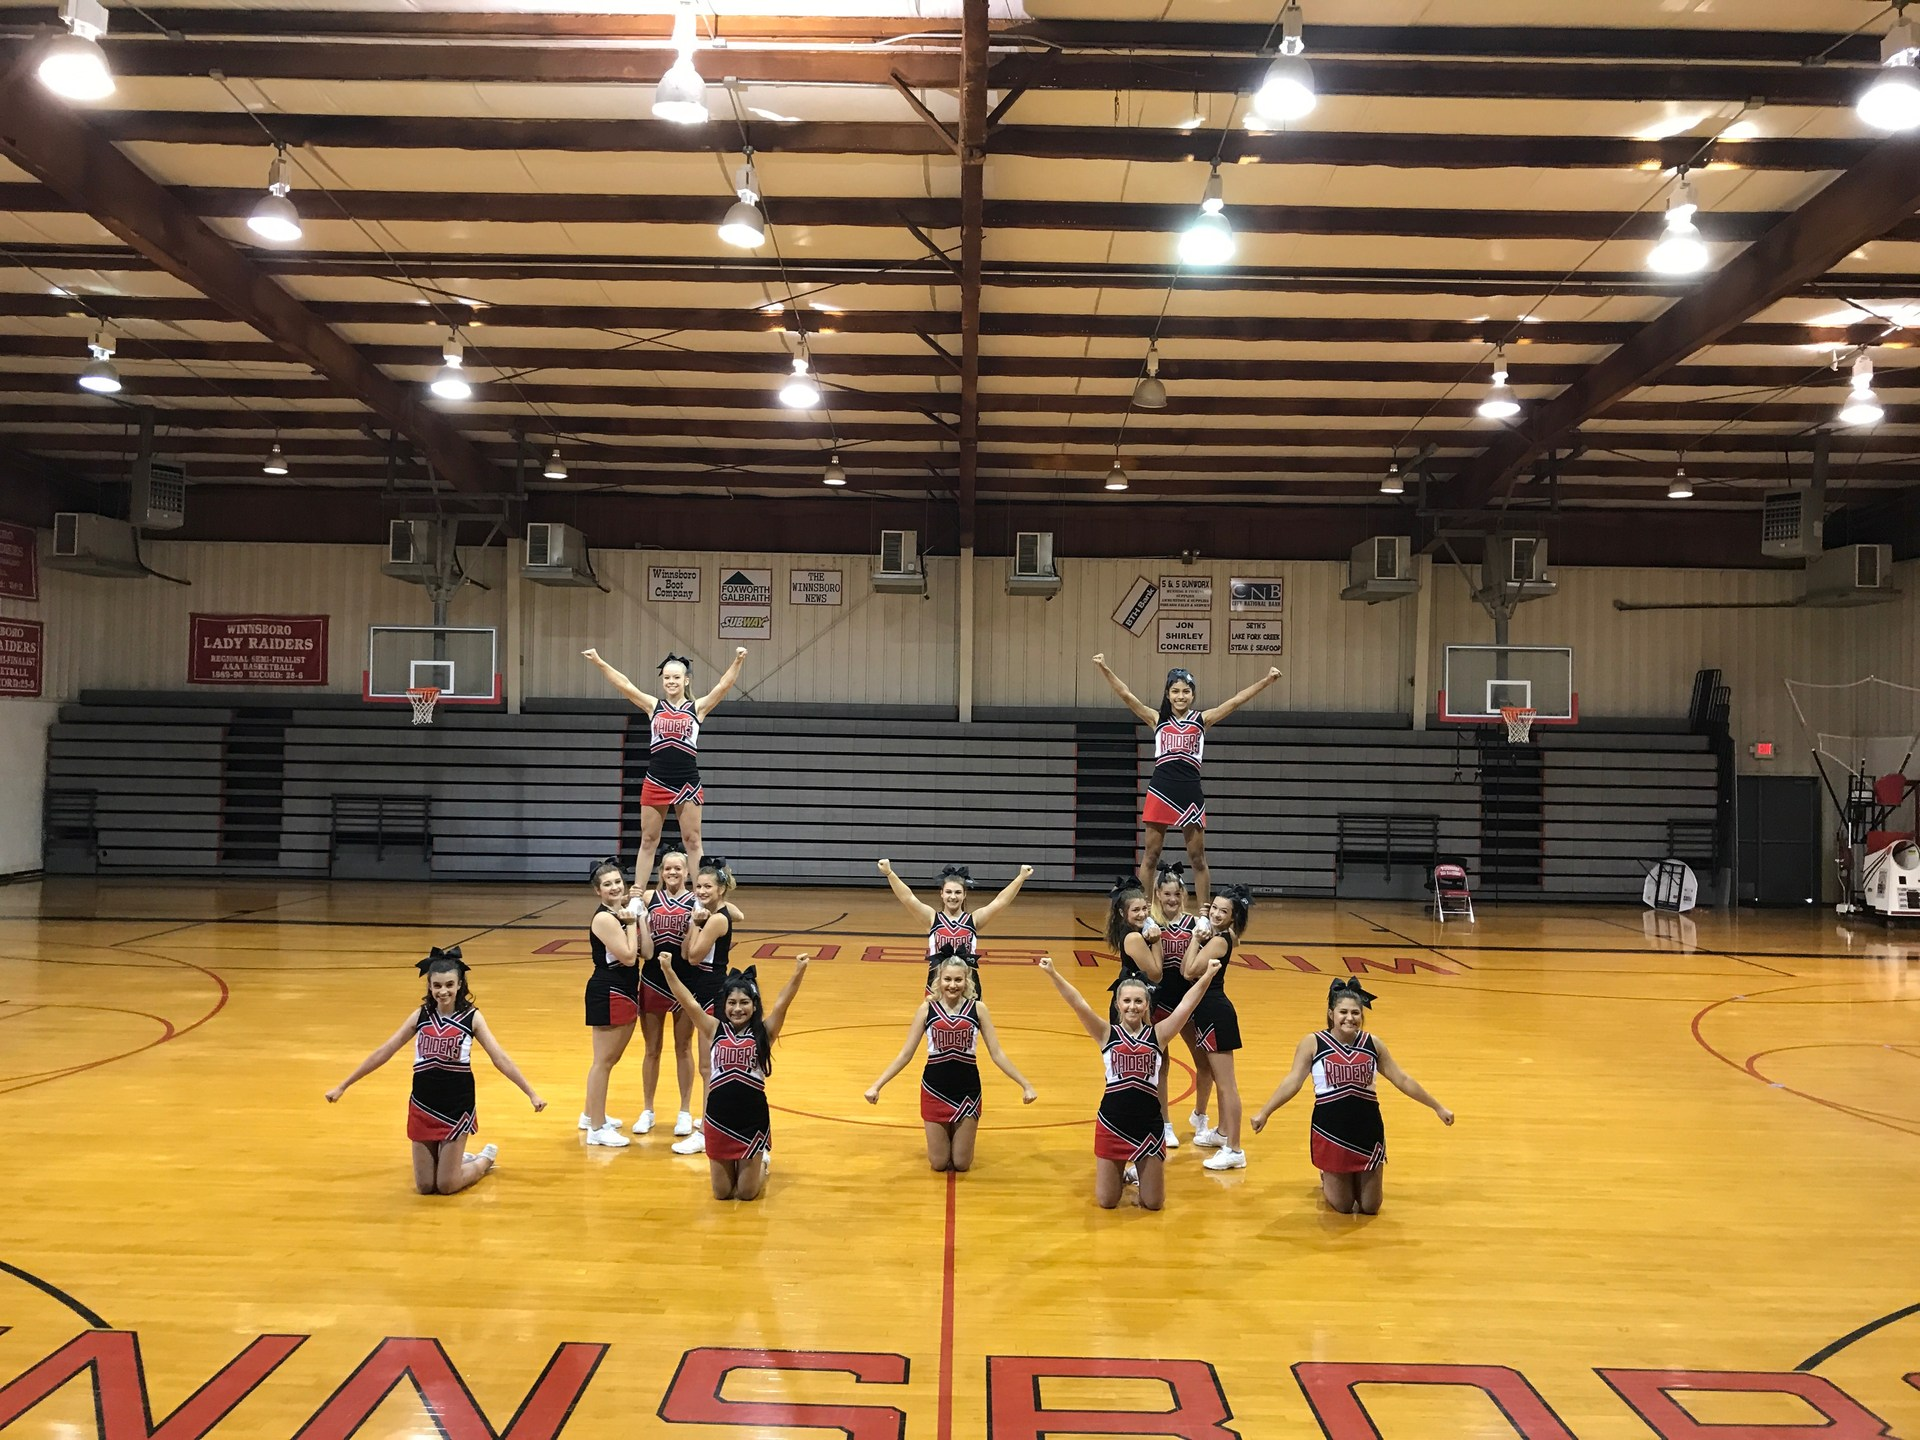 This is a picture of the 2017-18 Varsity Cheerleaders at Cheer Camp.